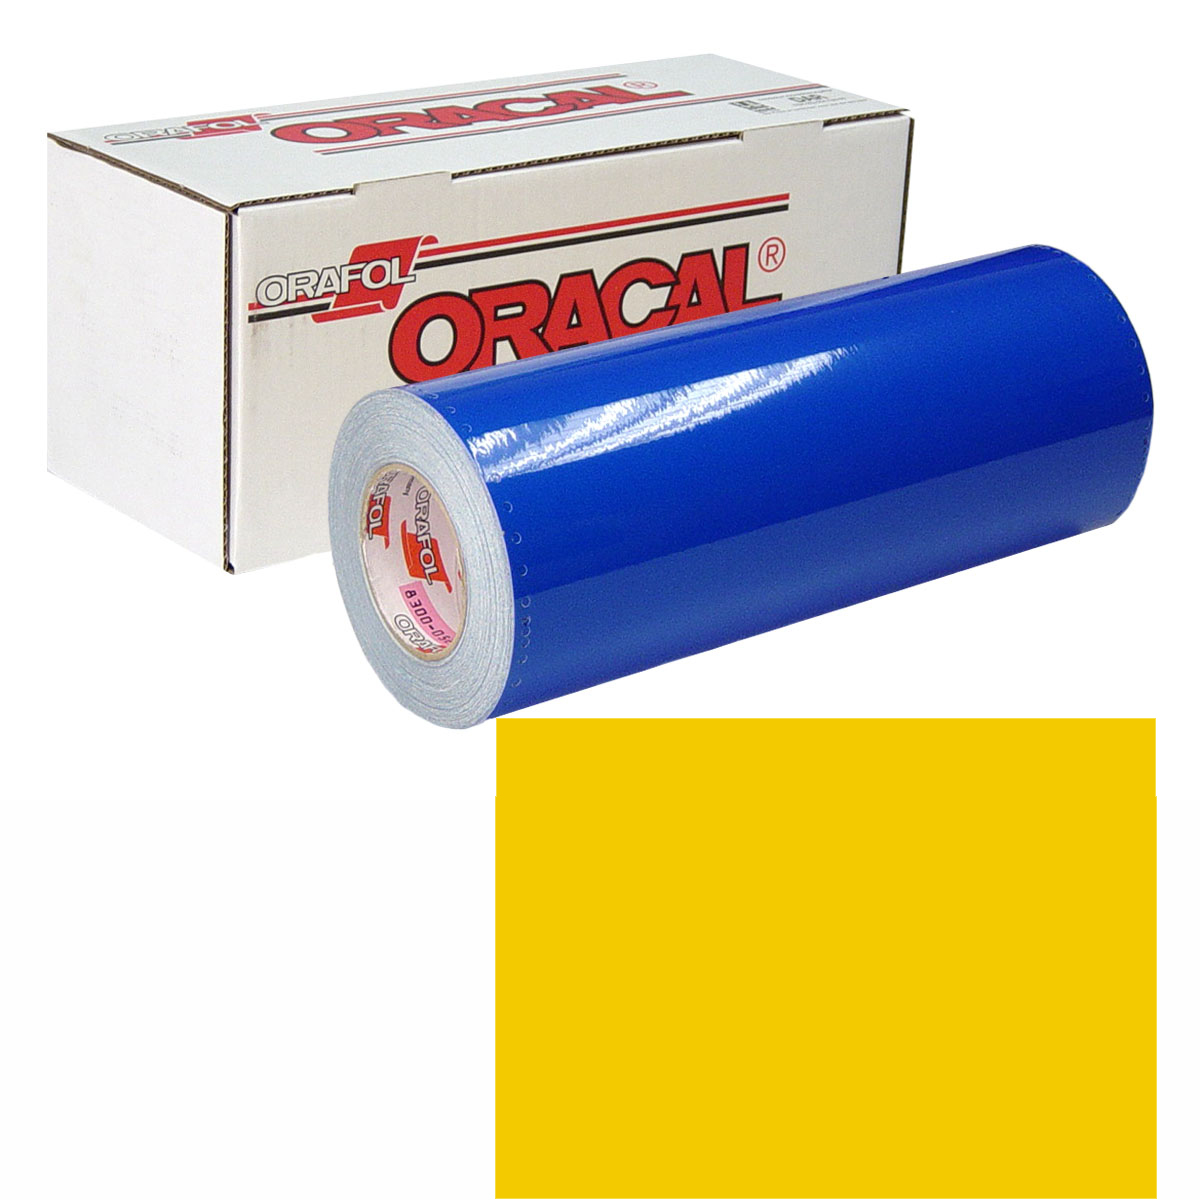 ORACAL 631 15In X 10Yd 022 Light Yellow